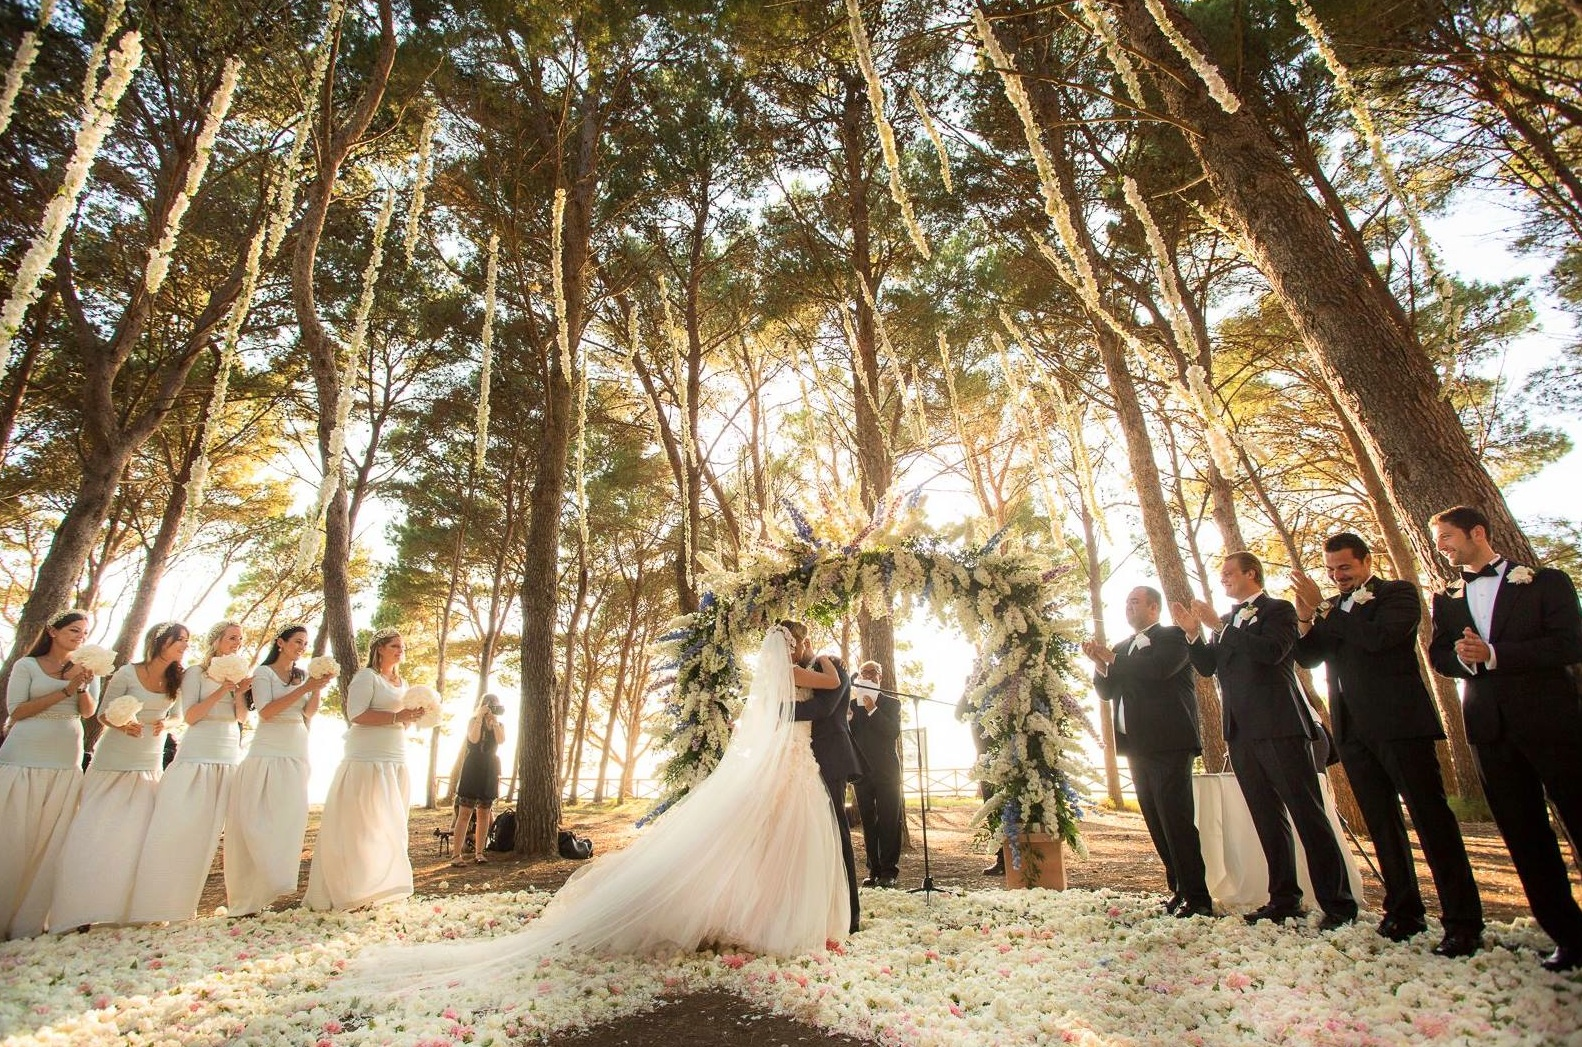 Capri wedding ceremony secret forrest diana sorensen sugokuii-events.com